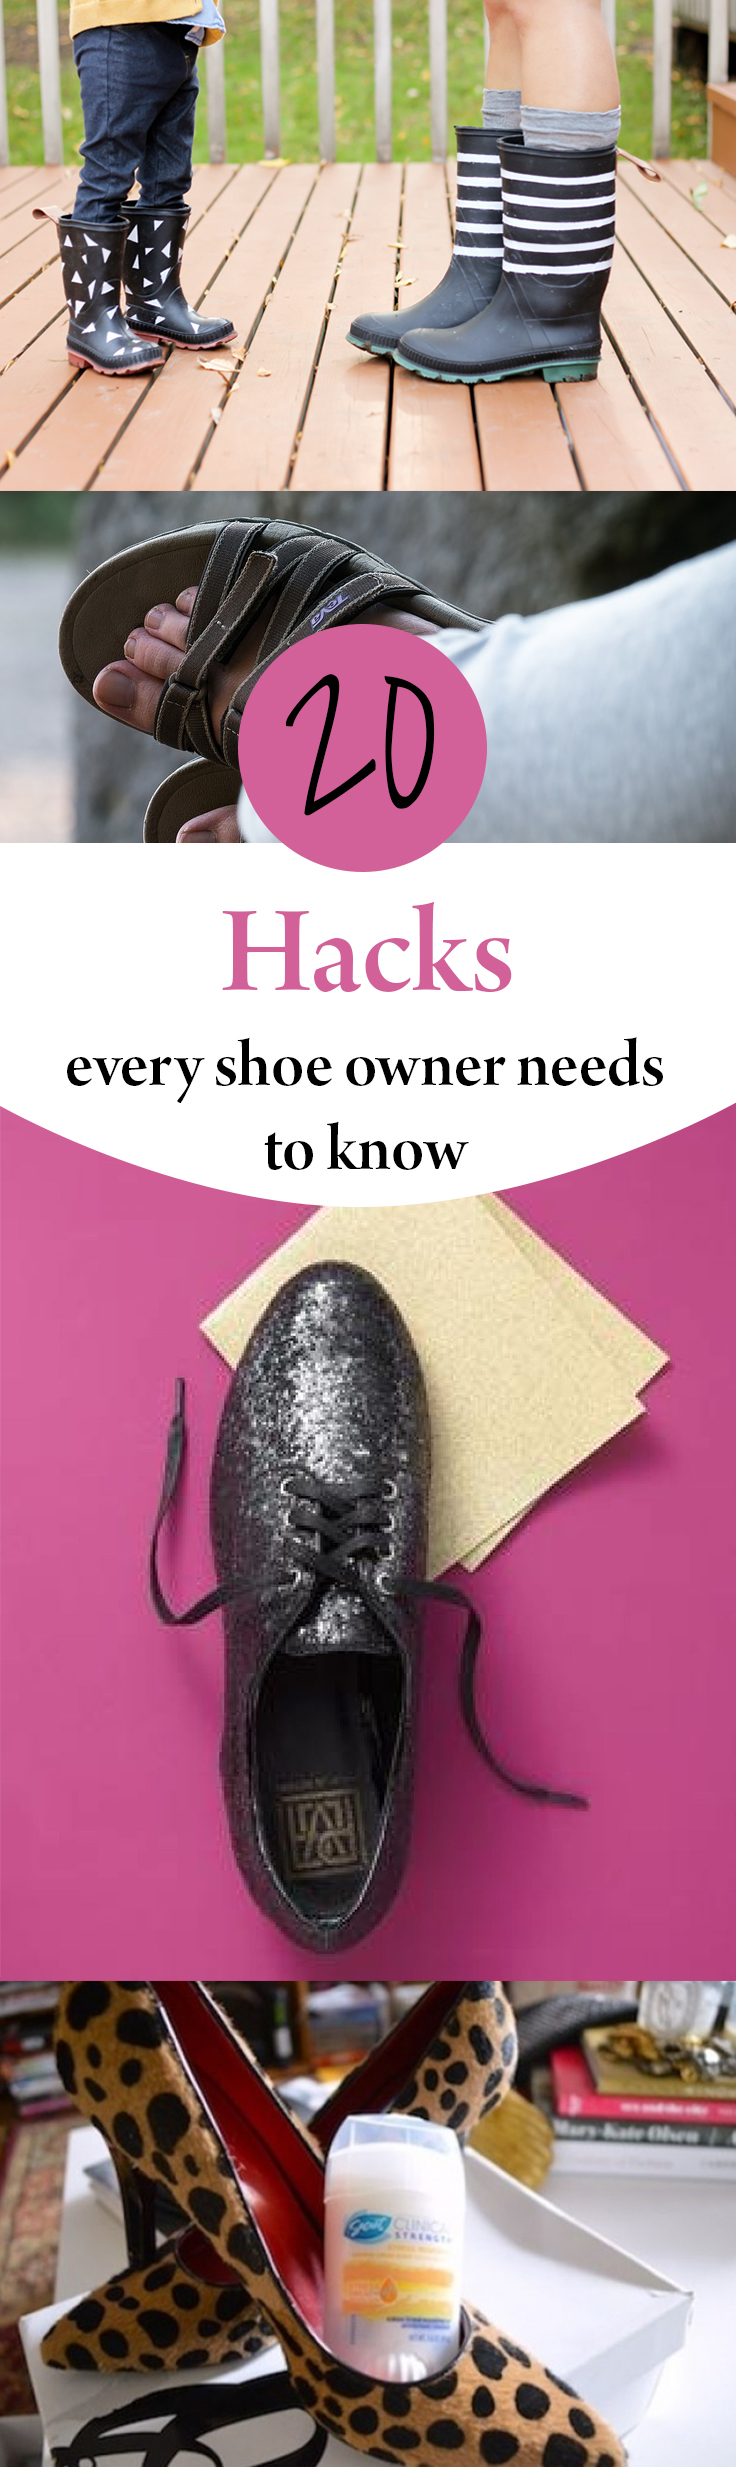 Shoe hacks, clothing hacks, how to repurpose clothing, popular pin, DIY clothing, easy clothing fixes, life hacks, life tips and tricks.